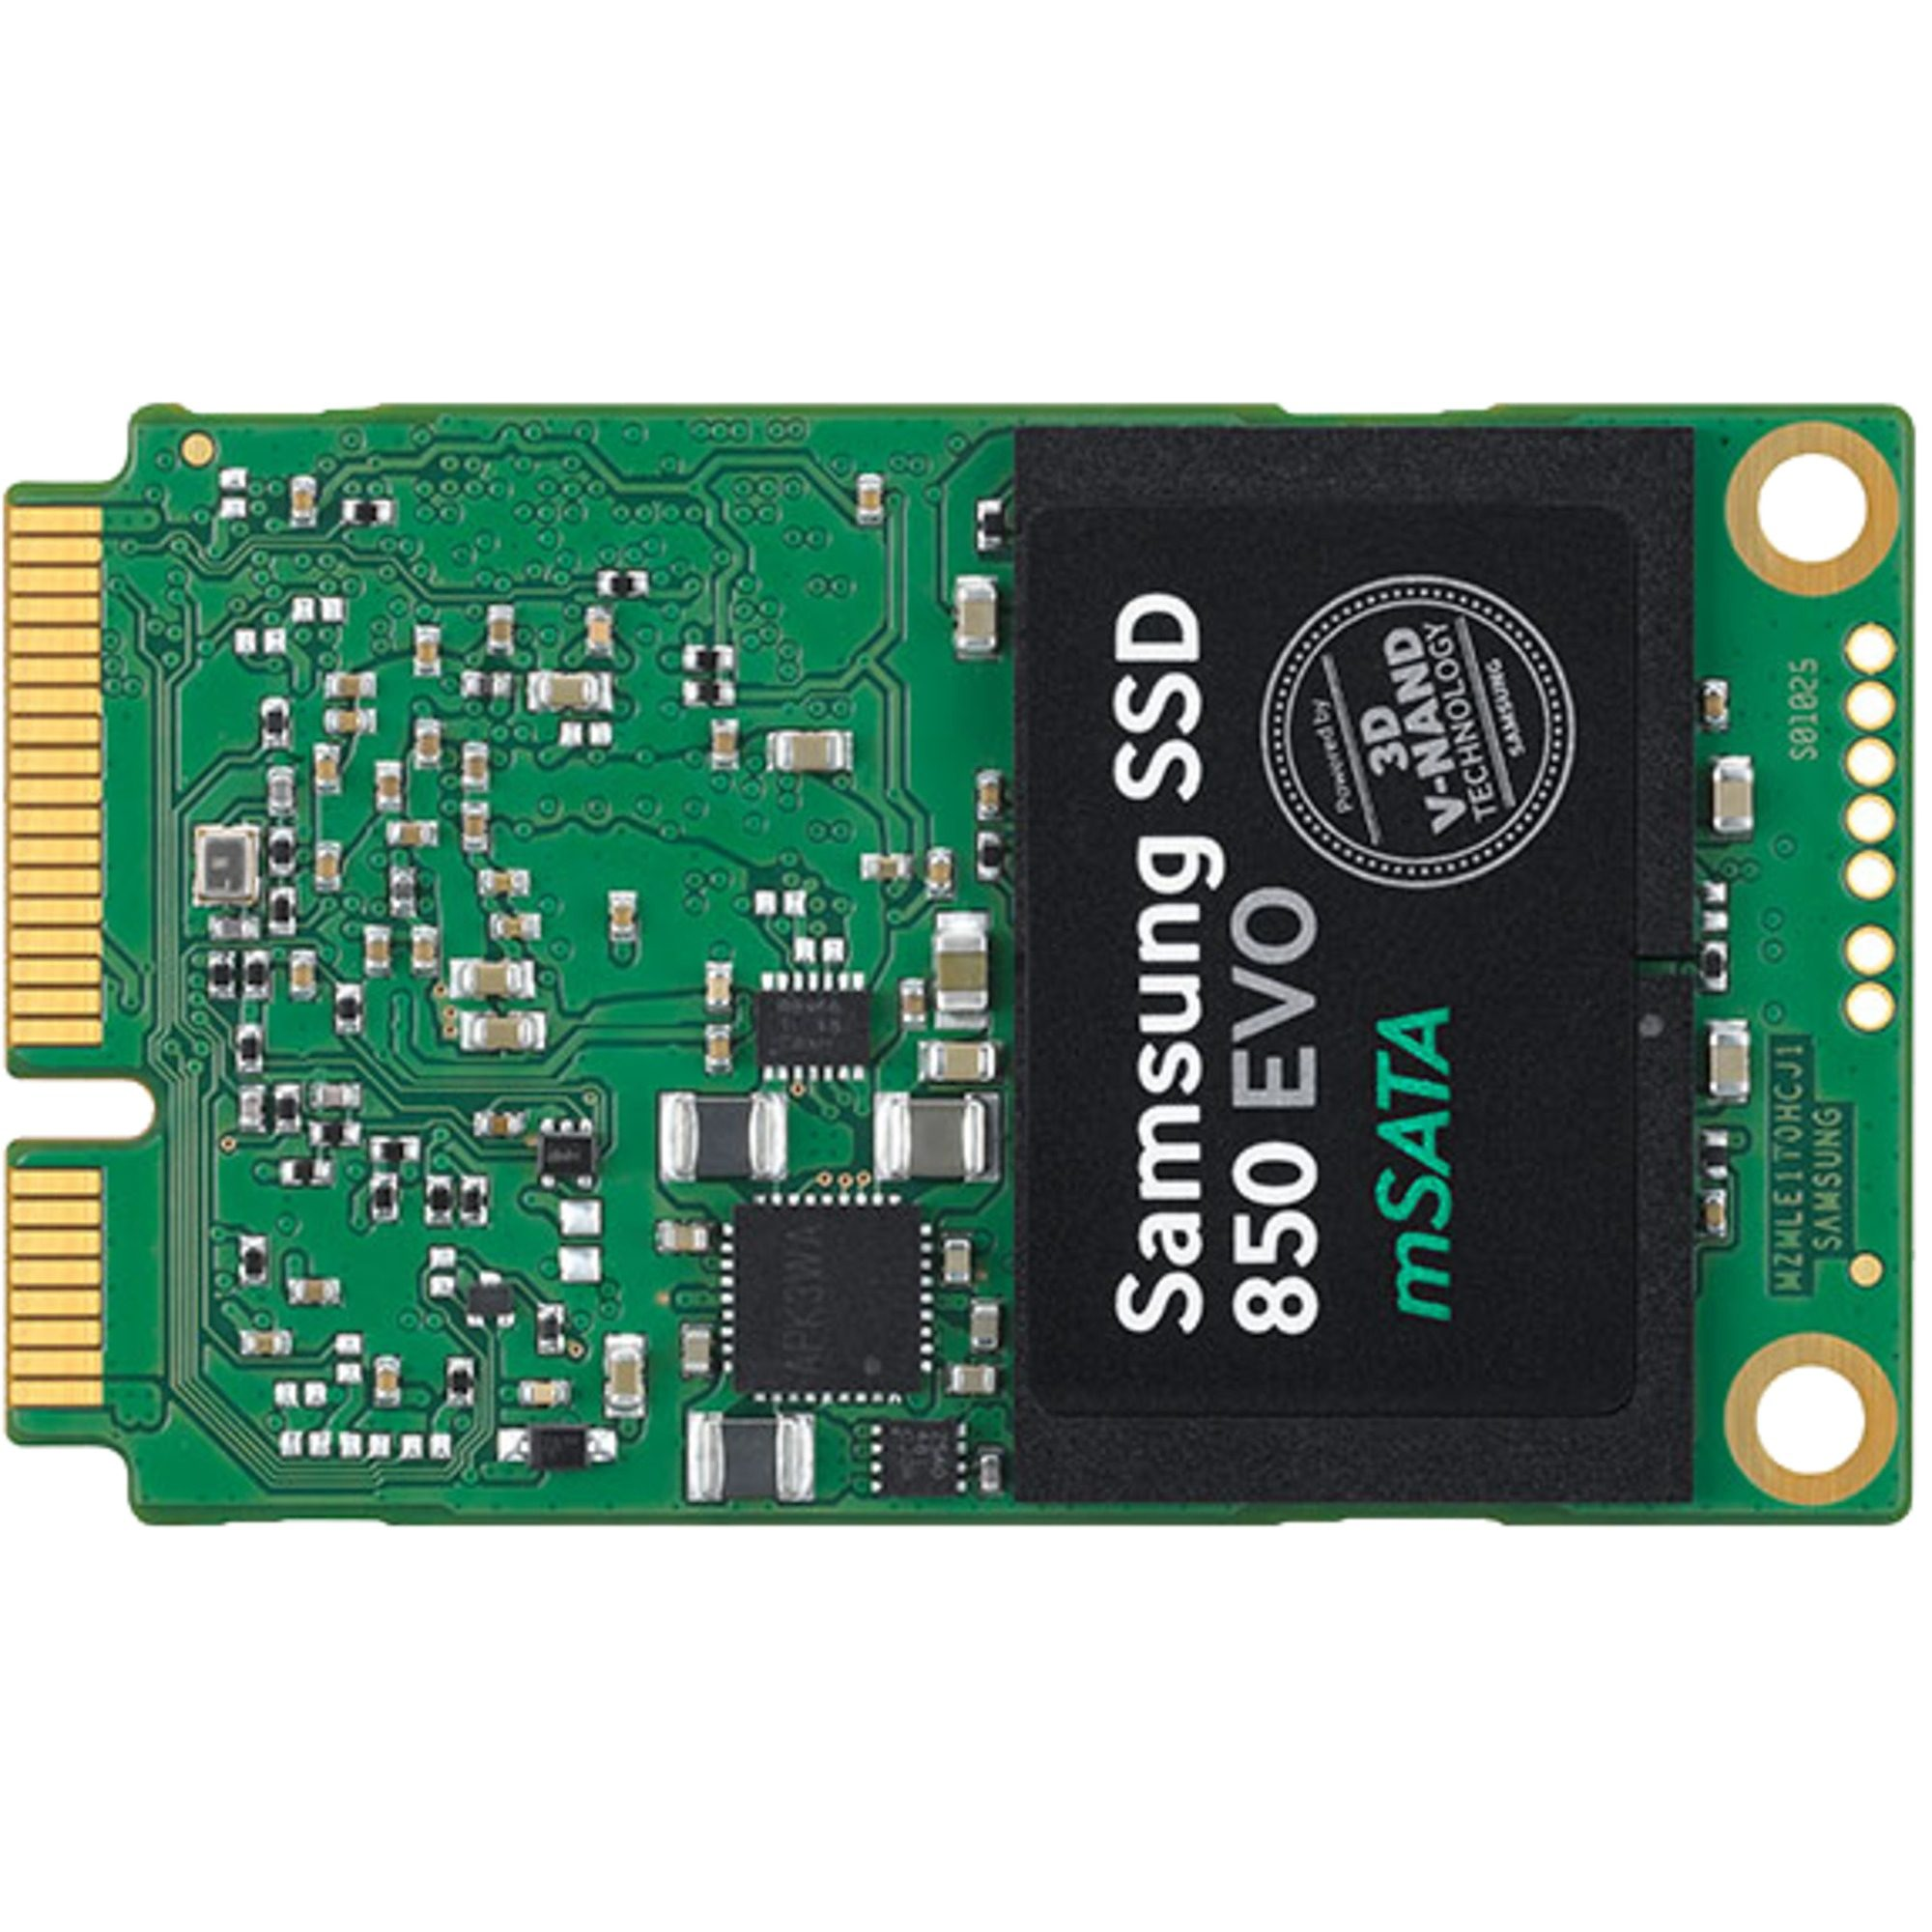 Samsung Solid State Drive »MZ-M5E1T0BW 1 TB«